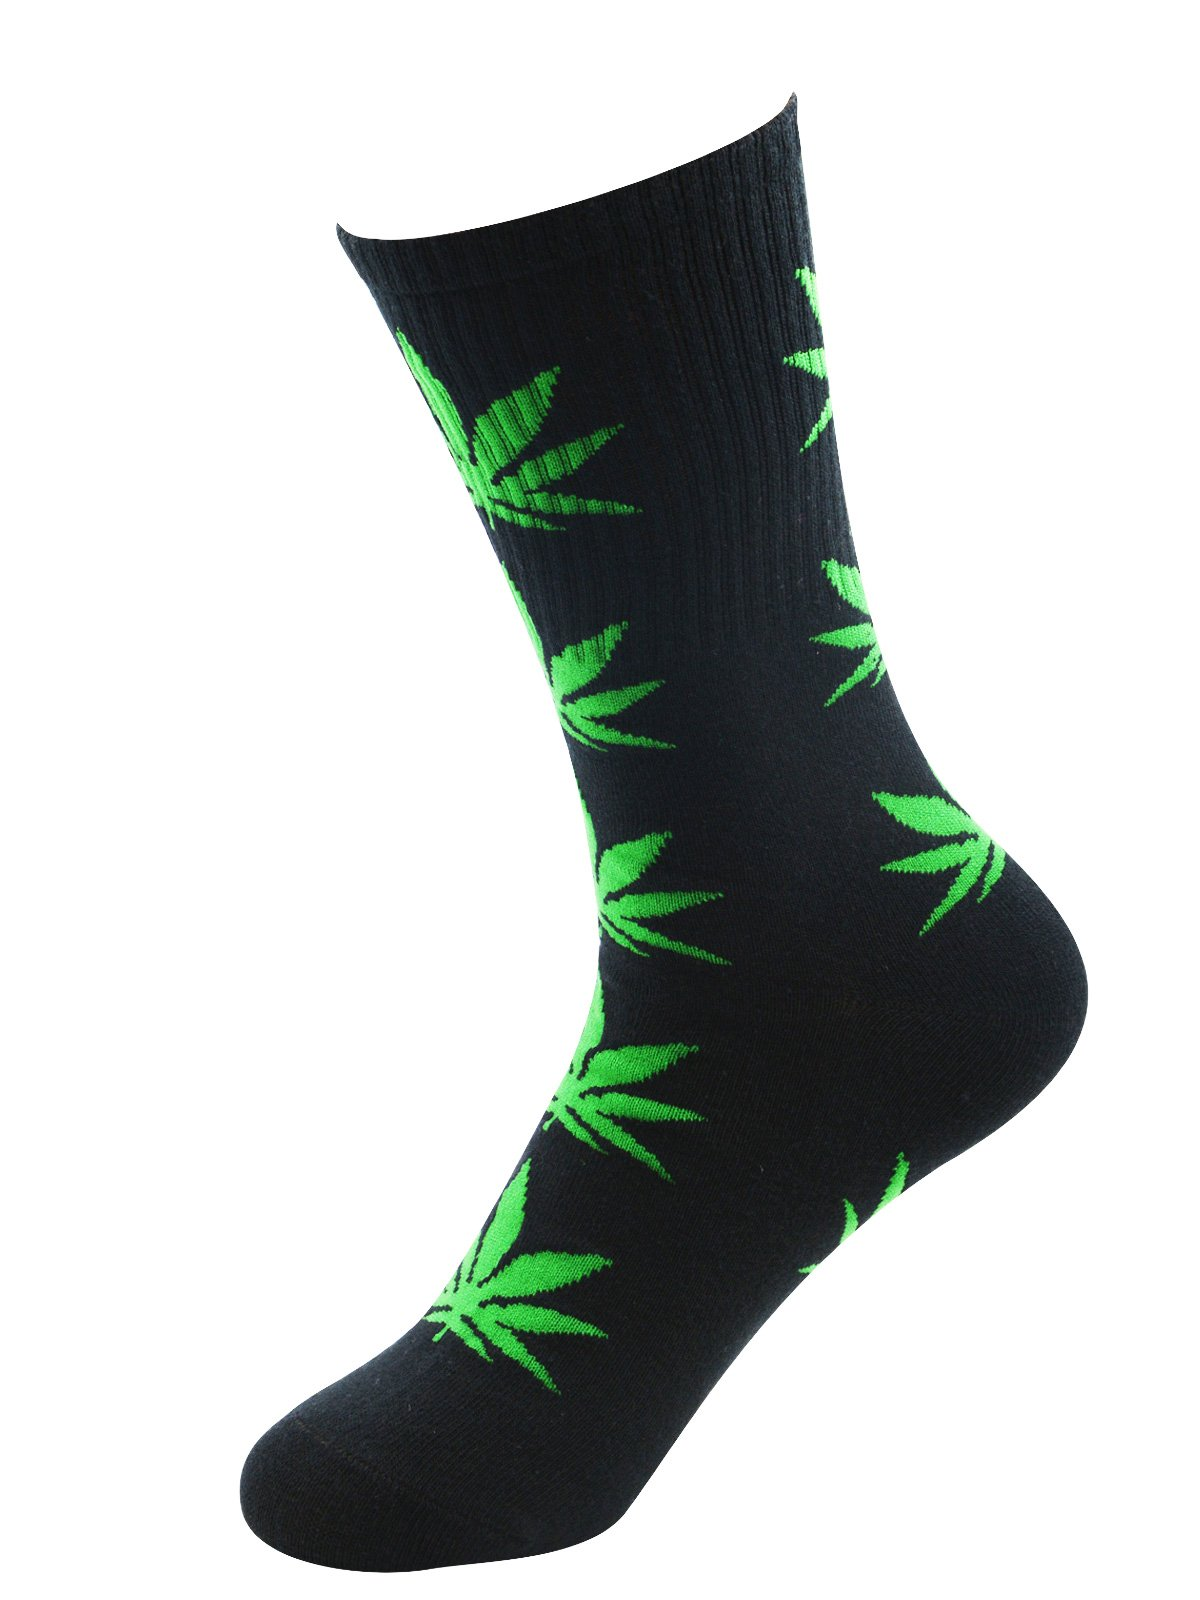 Zando Unisex Weed Leaf Printed Cotton Socks Maple Leaf Printed Socks Athletic Sports Marijuana High Crew Socks